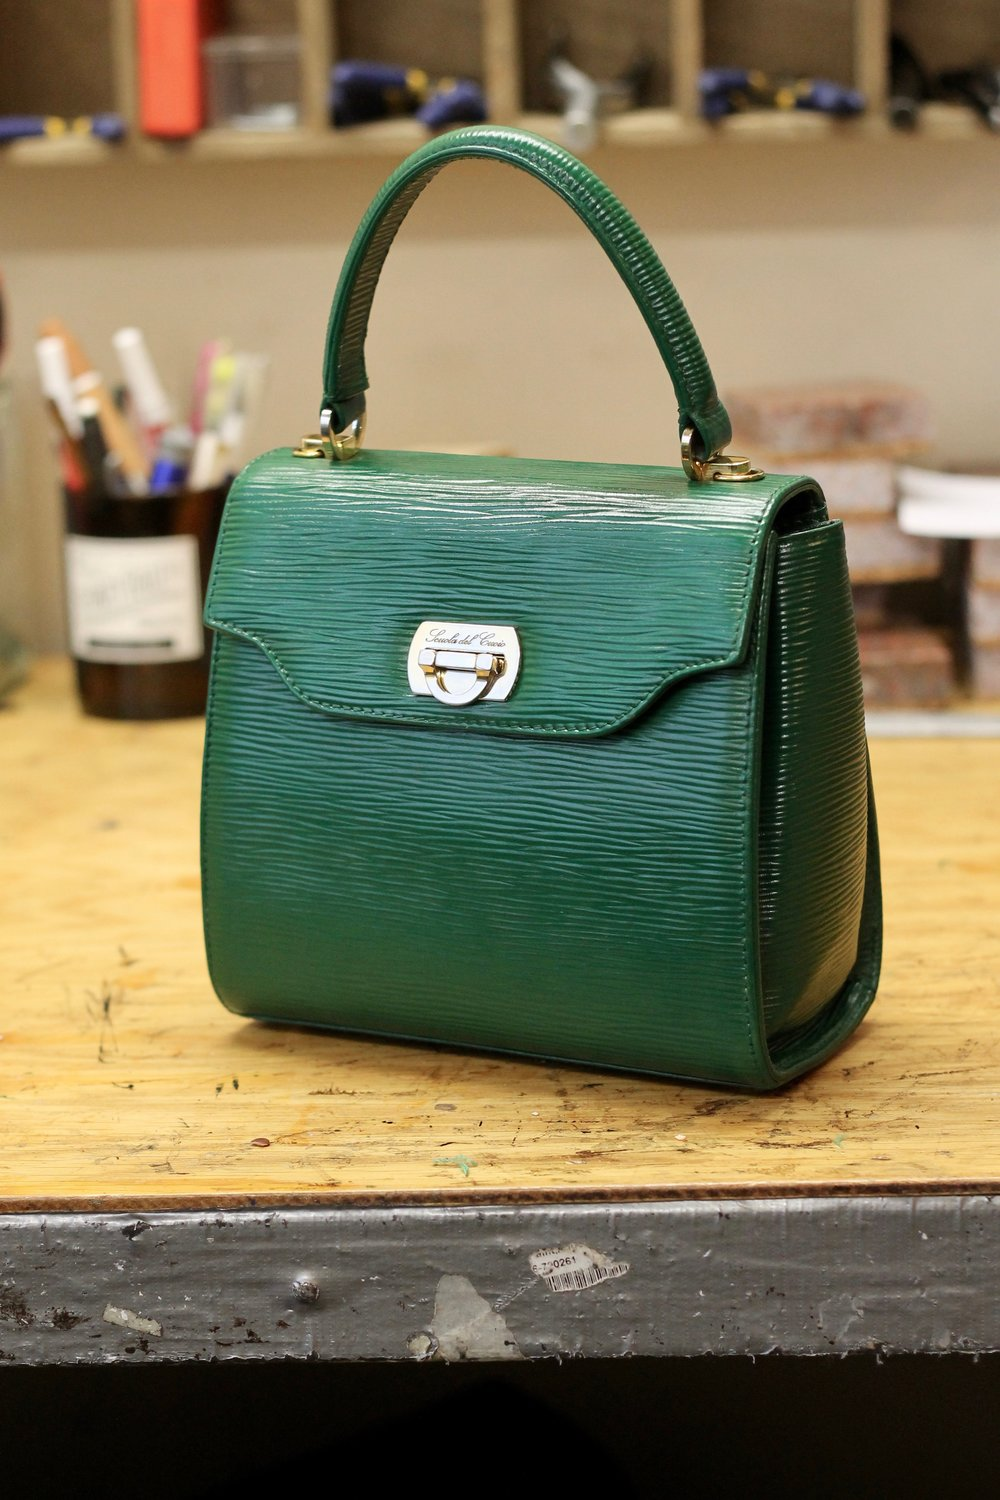 Good as new! The handle was sewn by hand through three layer of leather. This kind of stitch allows the weight of the bag to distributed evenly and helps prevent the seam from tearing.